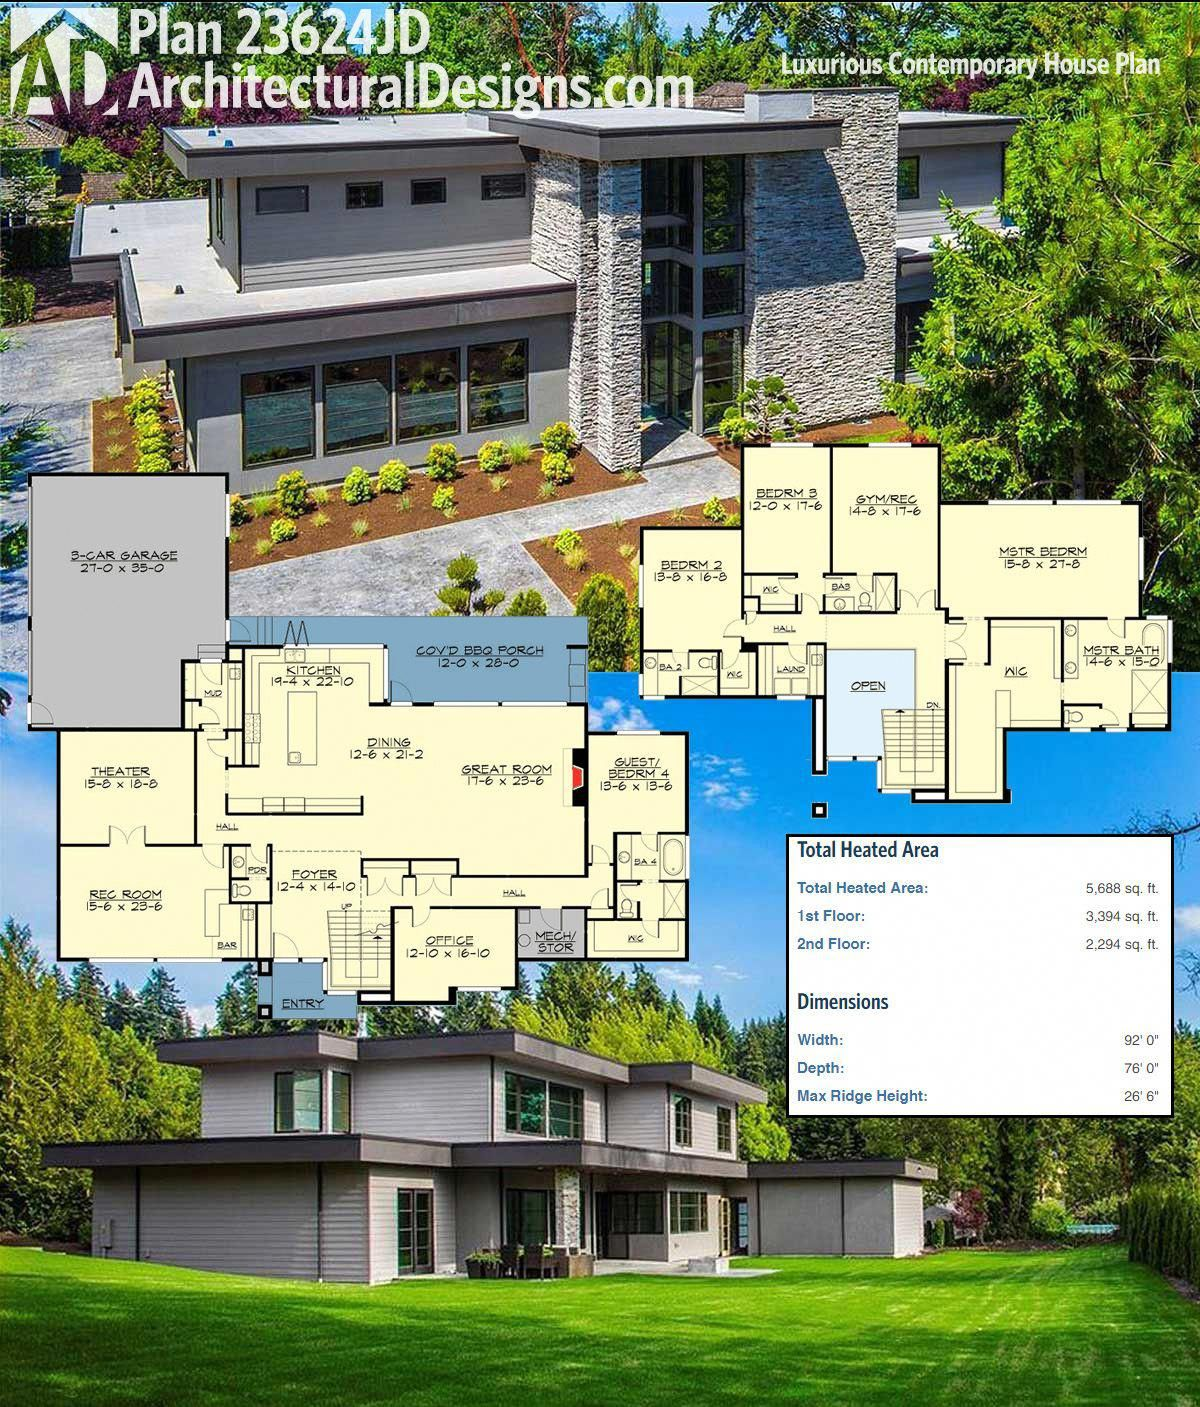 Architectural Designs Luxury Contemporary House Plan 23624jd Gives You 4 To 5 Beds And Over 5 600 Squar Contemporary House Plans House Plans Contemporary House